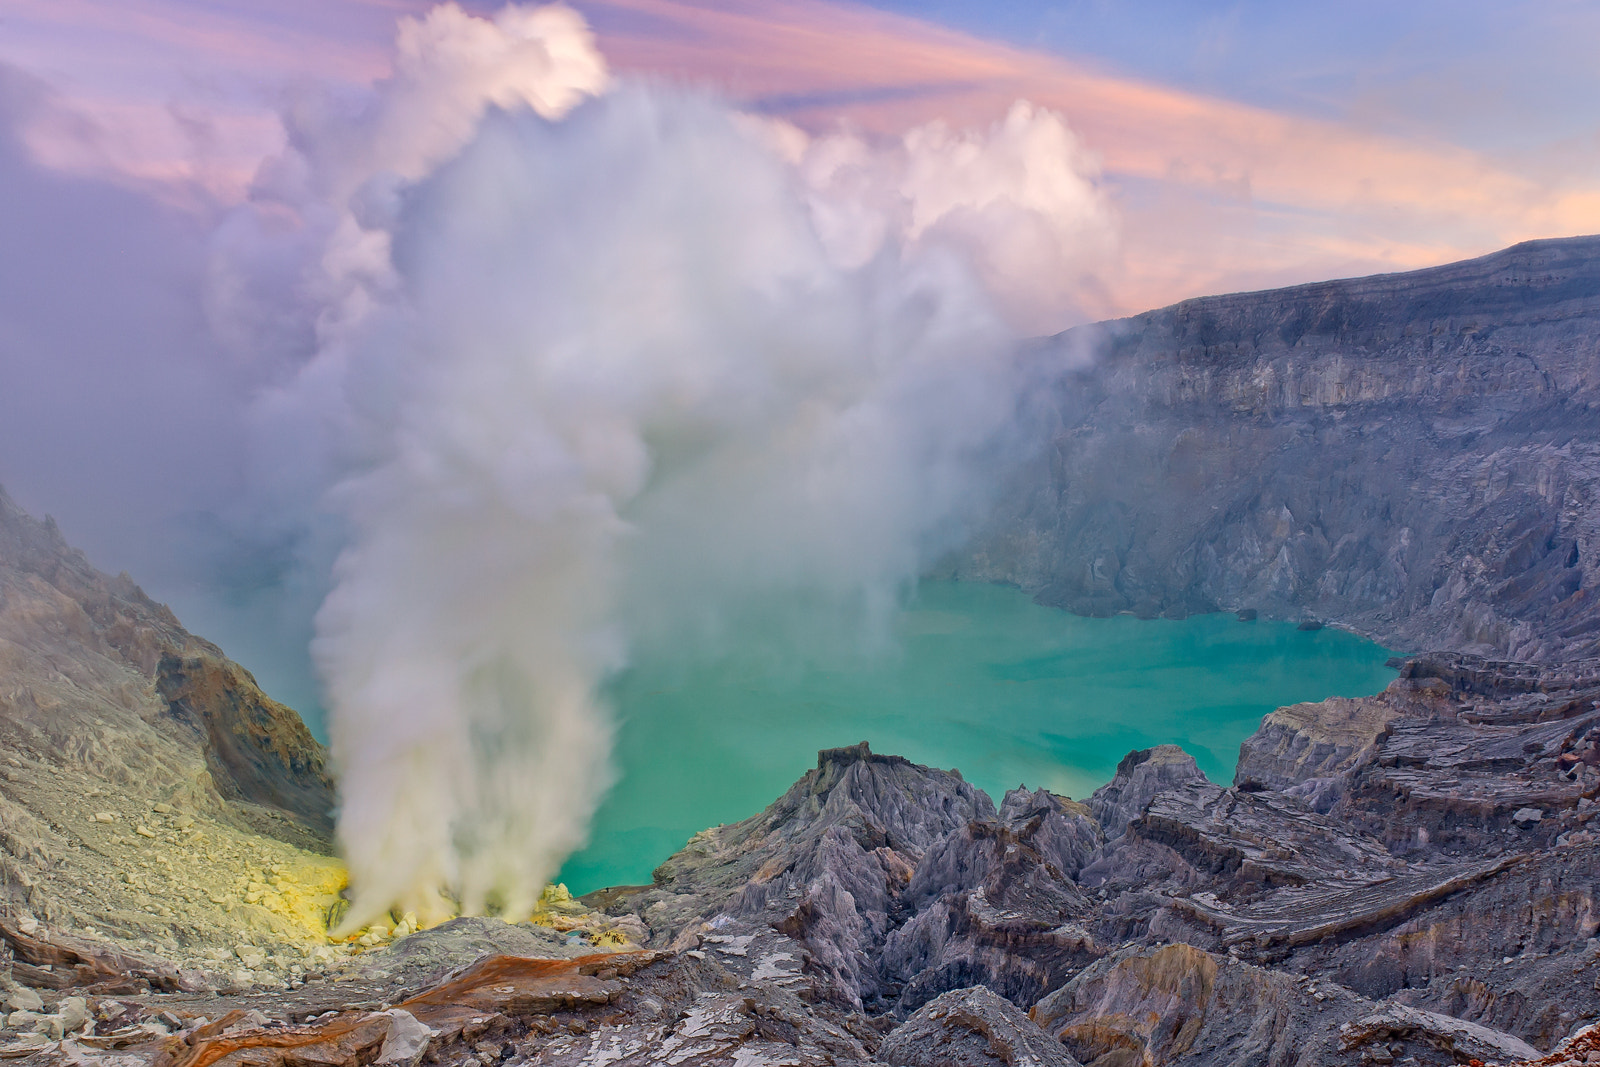 Photograph Ijen Crater Lake by Helminadia Ranford on 500px